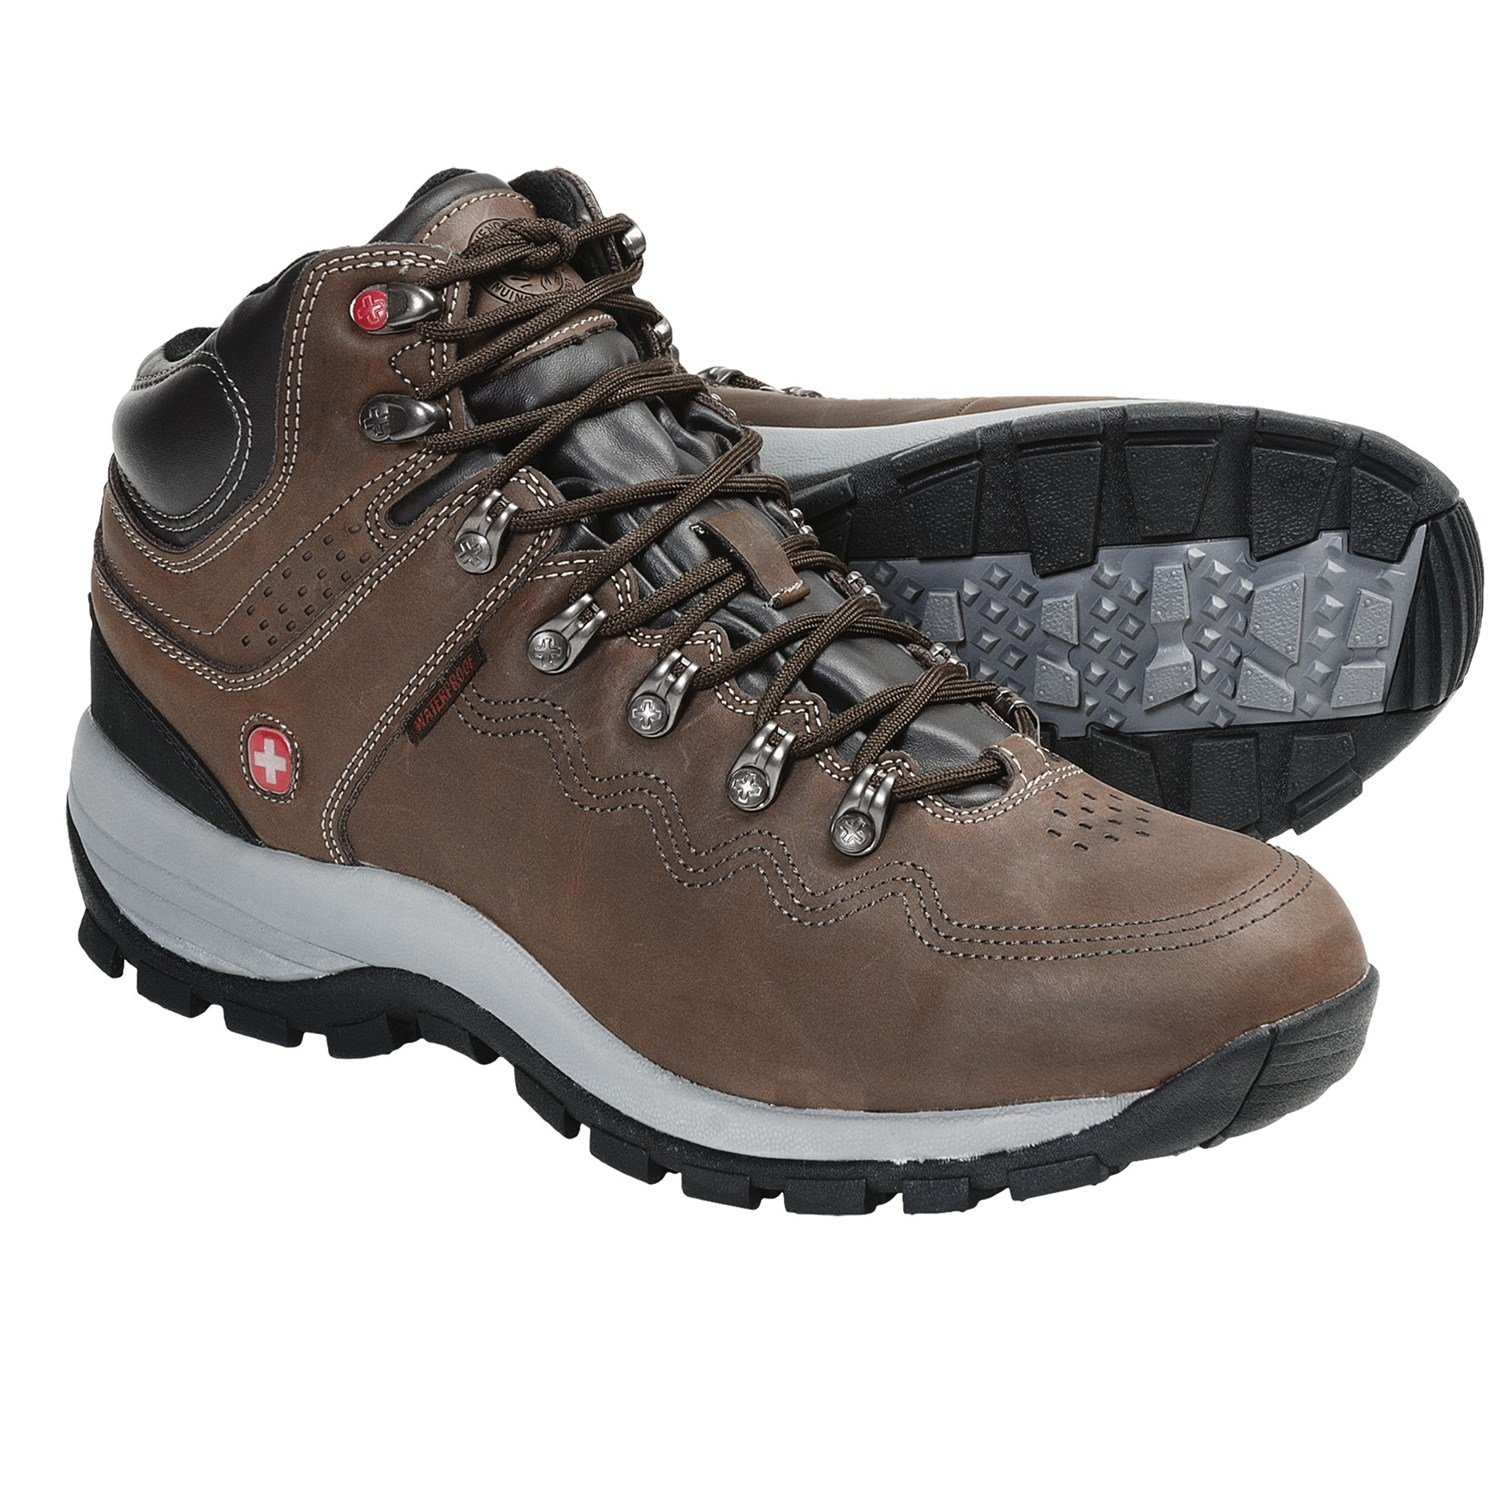 06d88bb859b Amazon.com | Wenger Swiss Gear Outback Men's Waterproof Hiking Boots ...